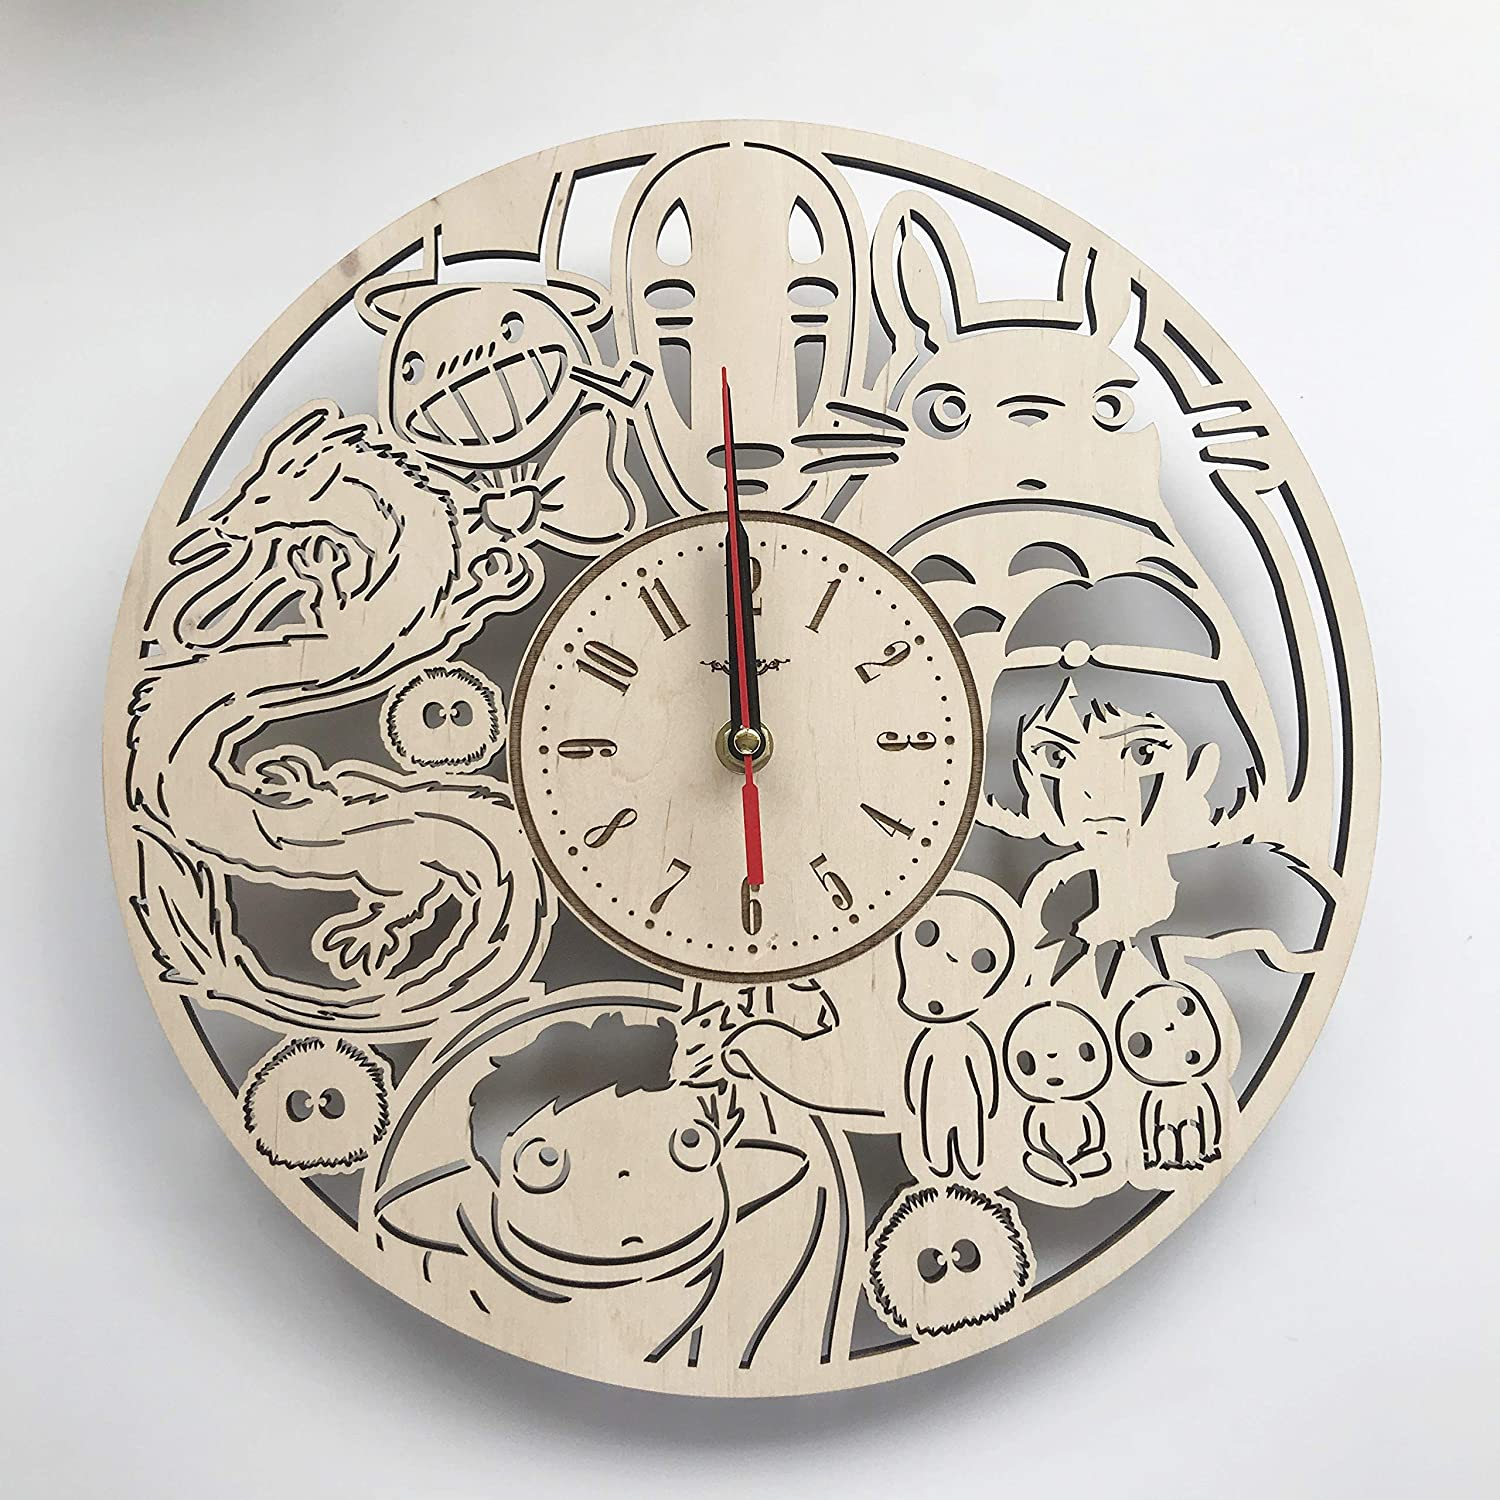 7ArtsStudio Studio Ghibli Wall Clock Made of Wood - Perfect and Beautifully Cut - Decorate Your Home with Modern Art - Unique Gift for Him and Her - Size 12 Inches